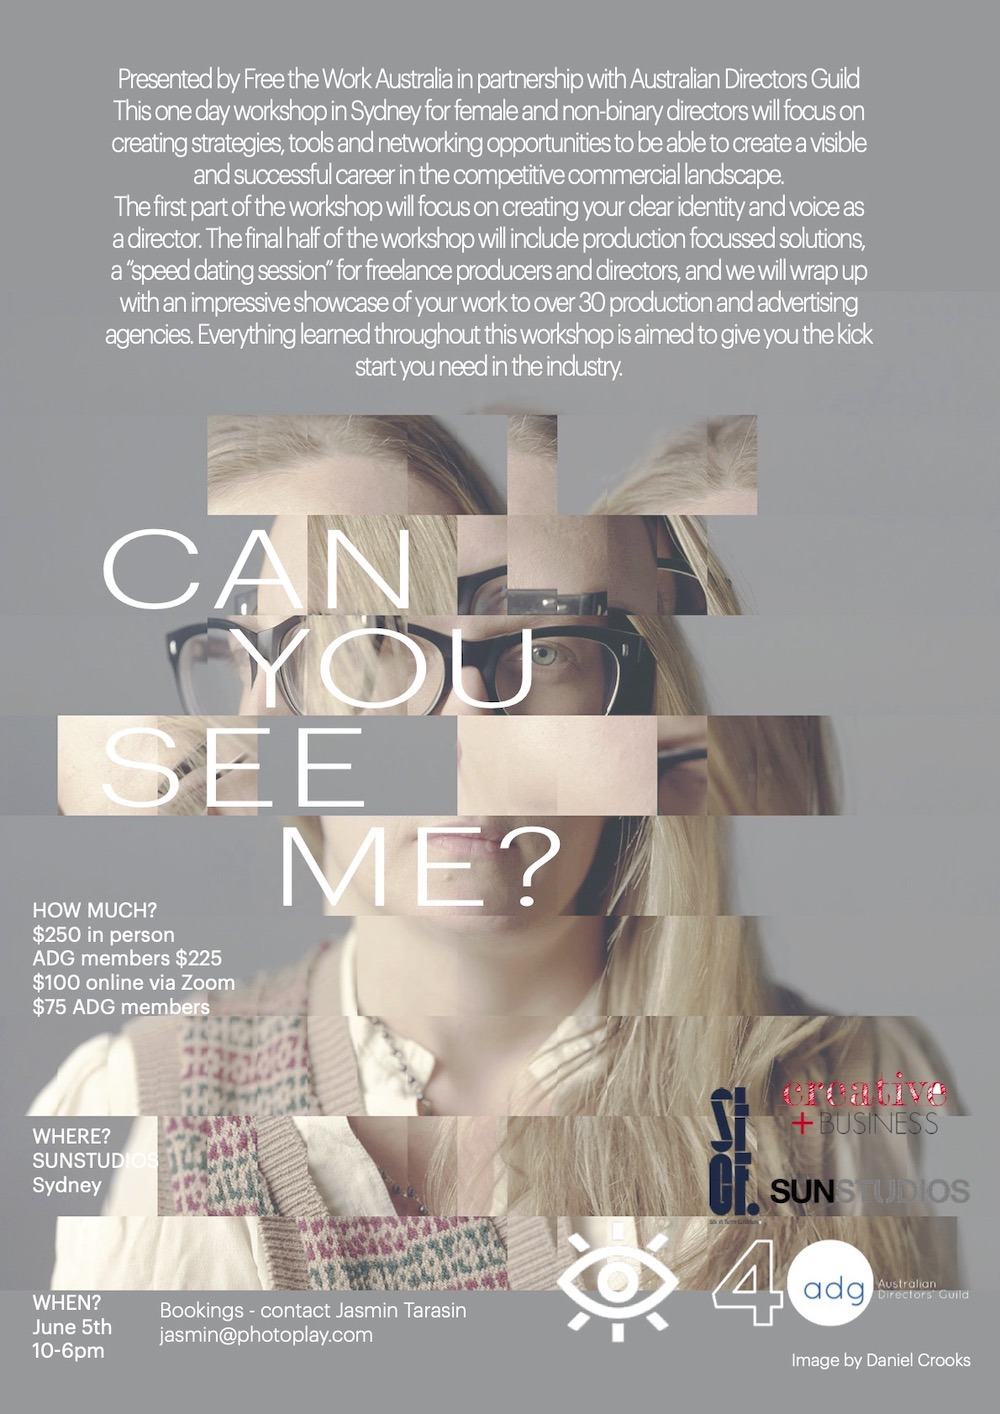 Countdown to Free the Work Australia 'CAN YOU SEE ME?' workshop this Saturday, June 5  ~ Producers invited to participate